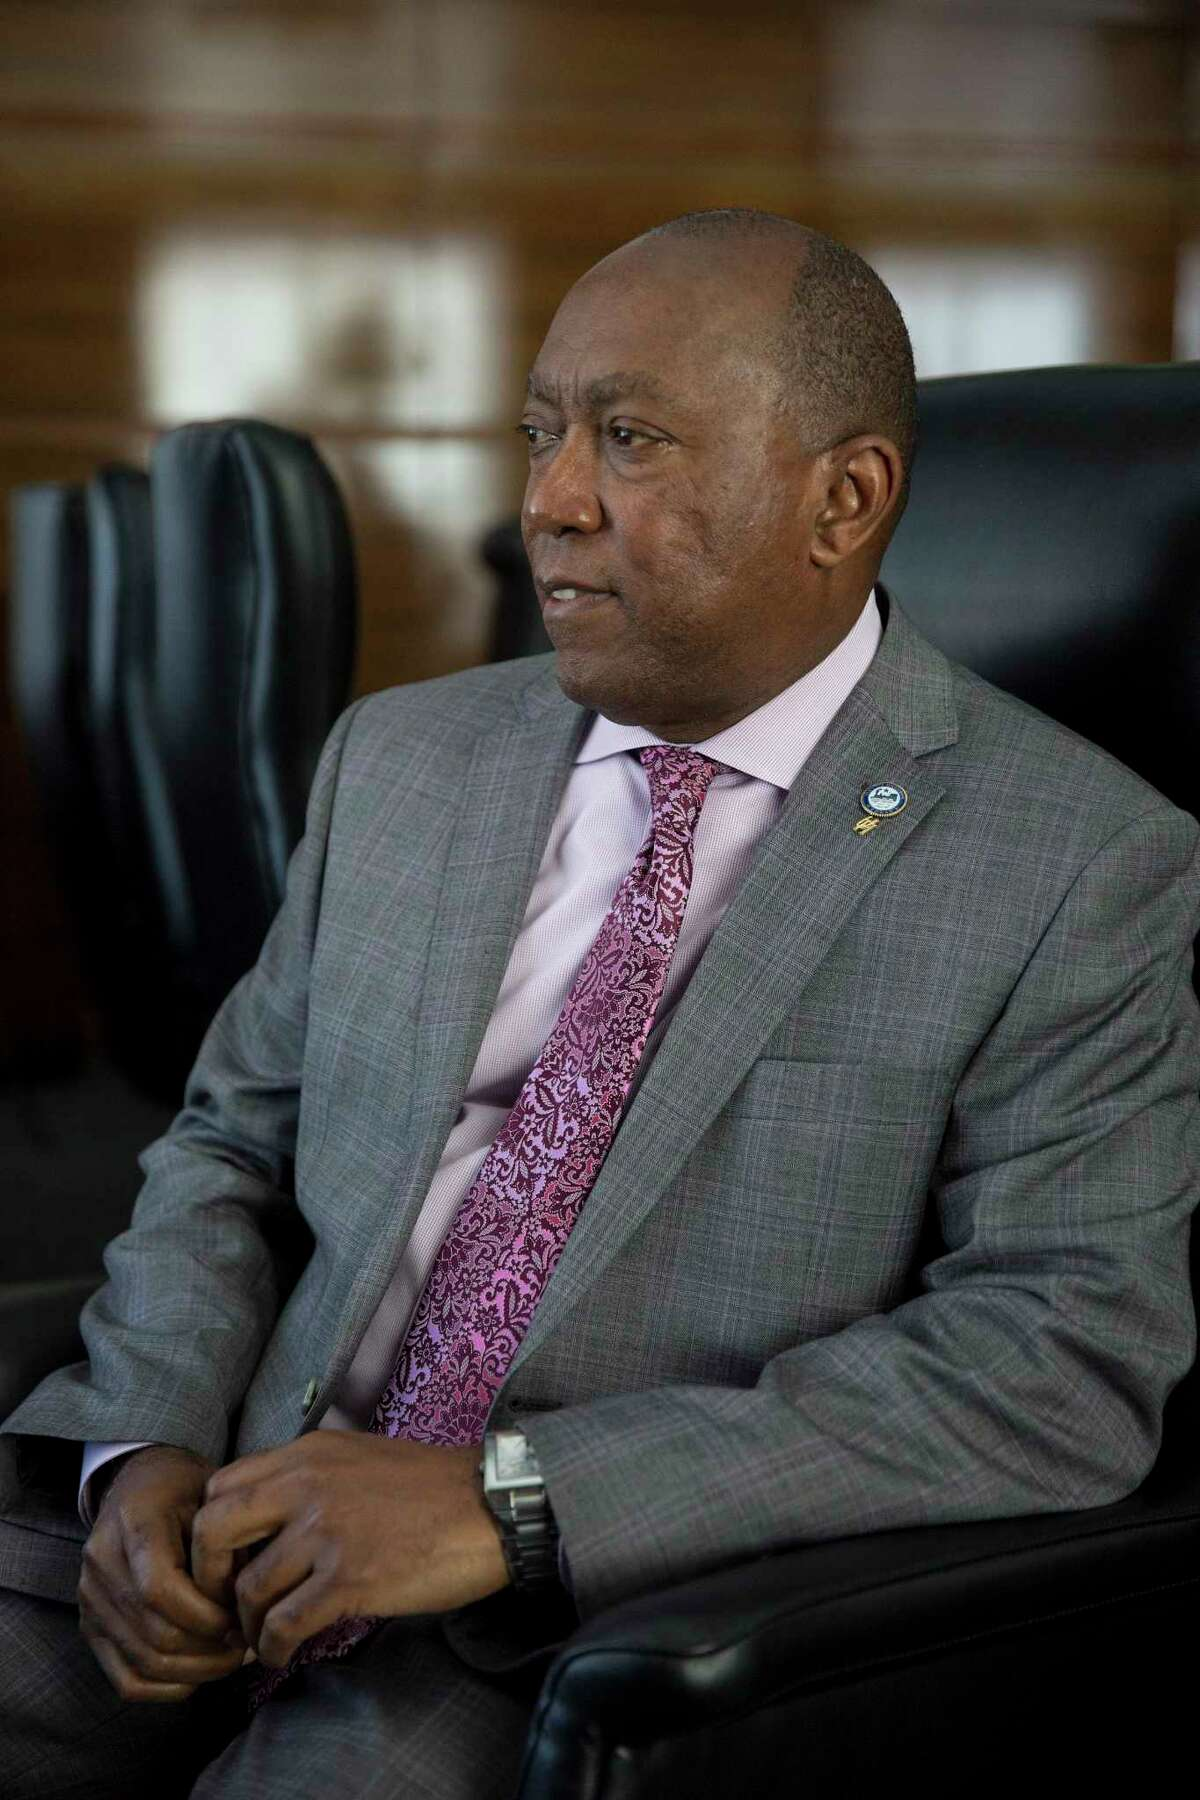 Mayor Sylvester Turner has proposed a one-year hike in the Houston's property tax rate hike to help pay for the city's recovery from Hurricane Harvey. (Ilana Panich-Linsman/The New York Times)